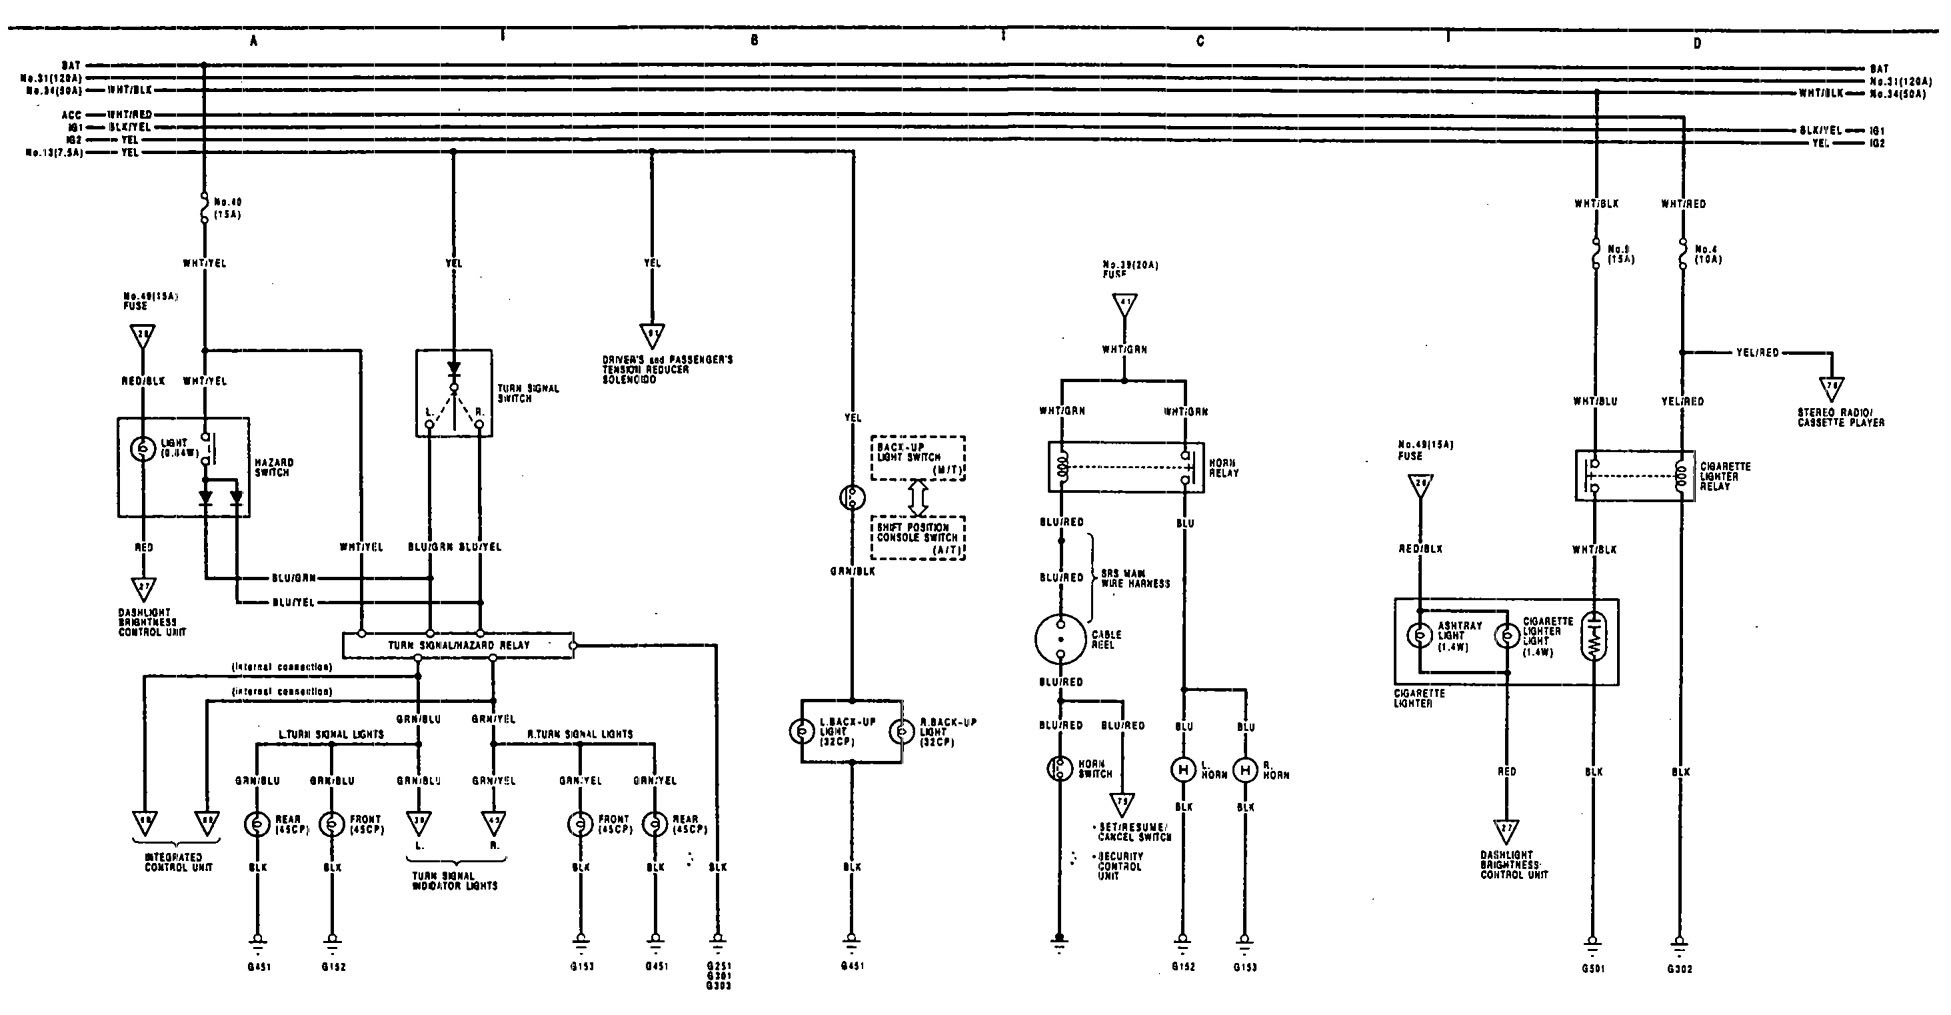 fuse box diagram 1991 gmc sierra